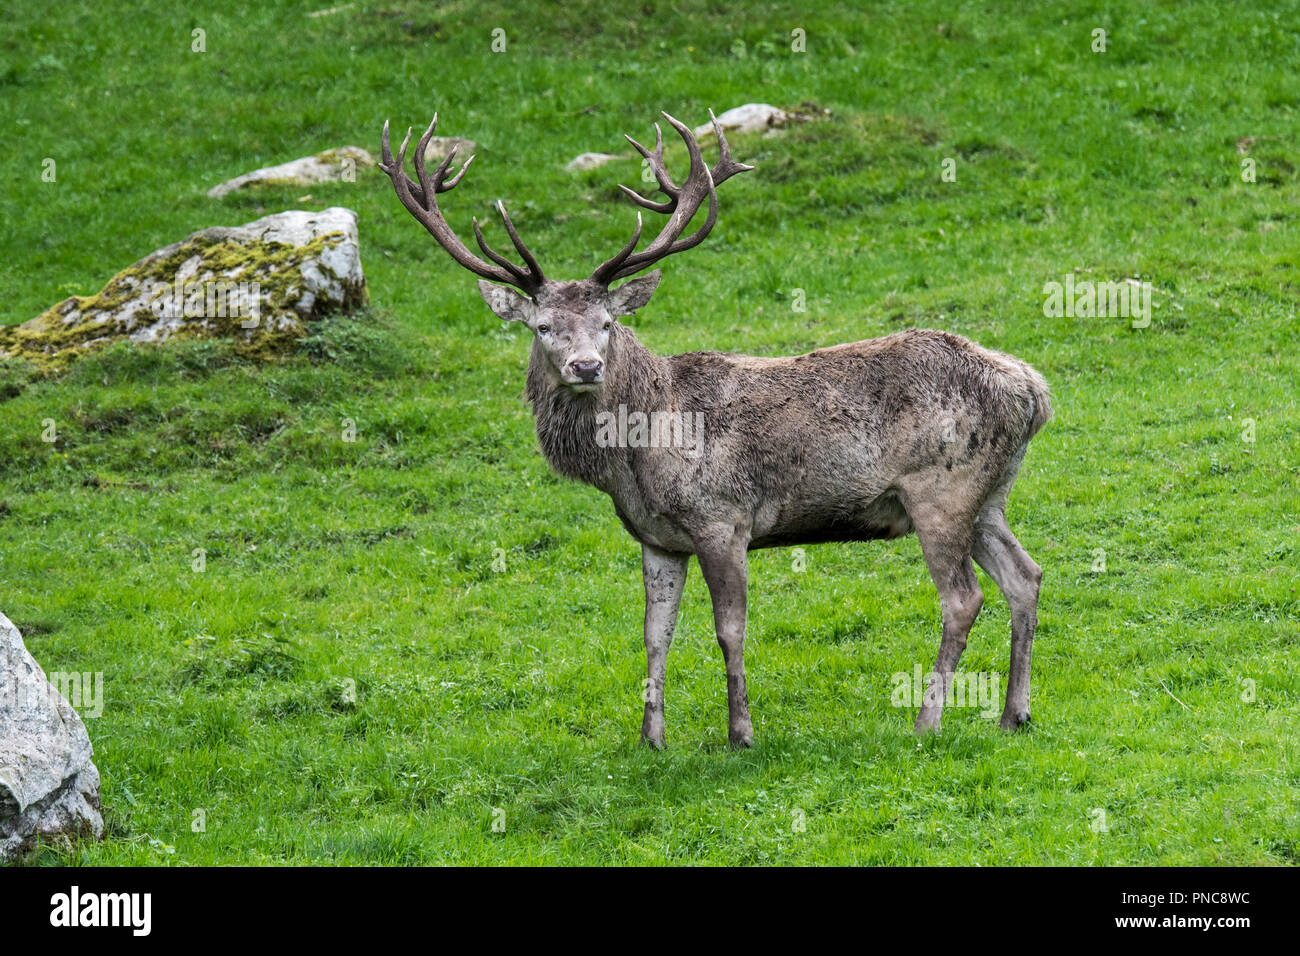 Red deer stag / male (Cervus elaphus) in Alpine meadow on mountain slope in the mountains of the Alps / Pyrenees Stock Photo